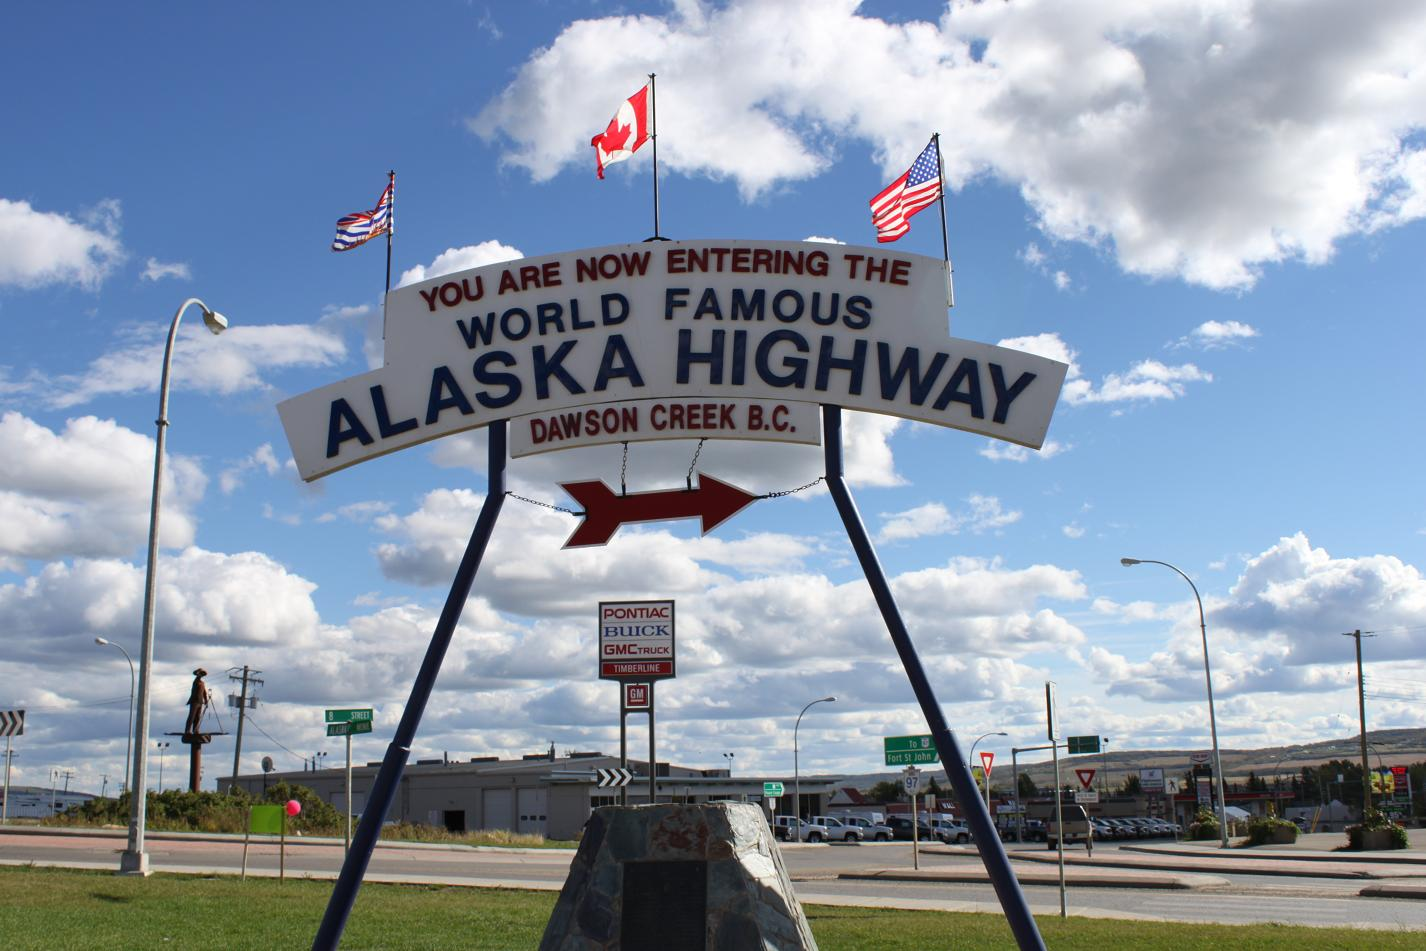 Entering the Alaska Highway